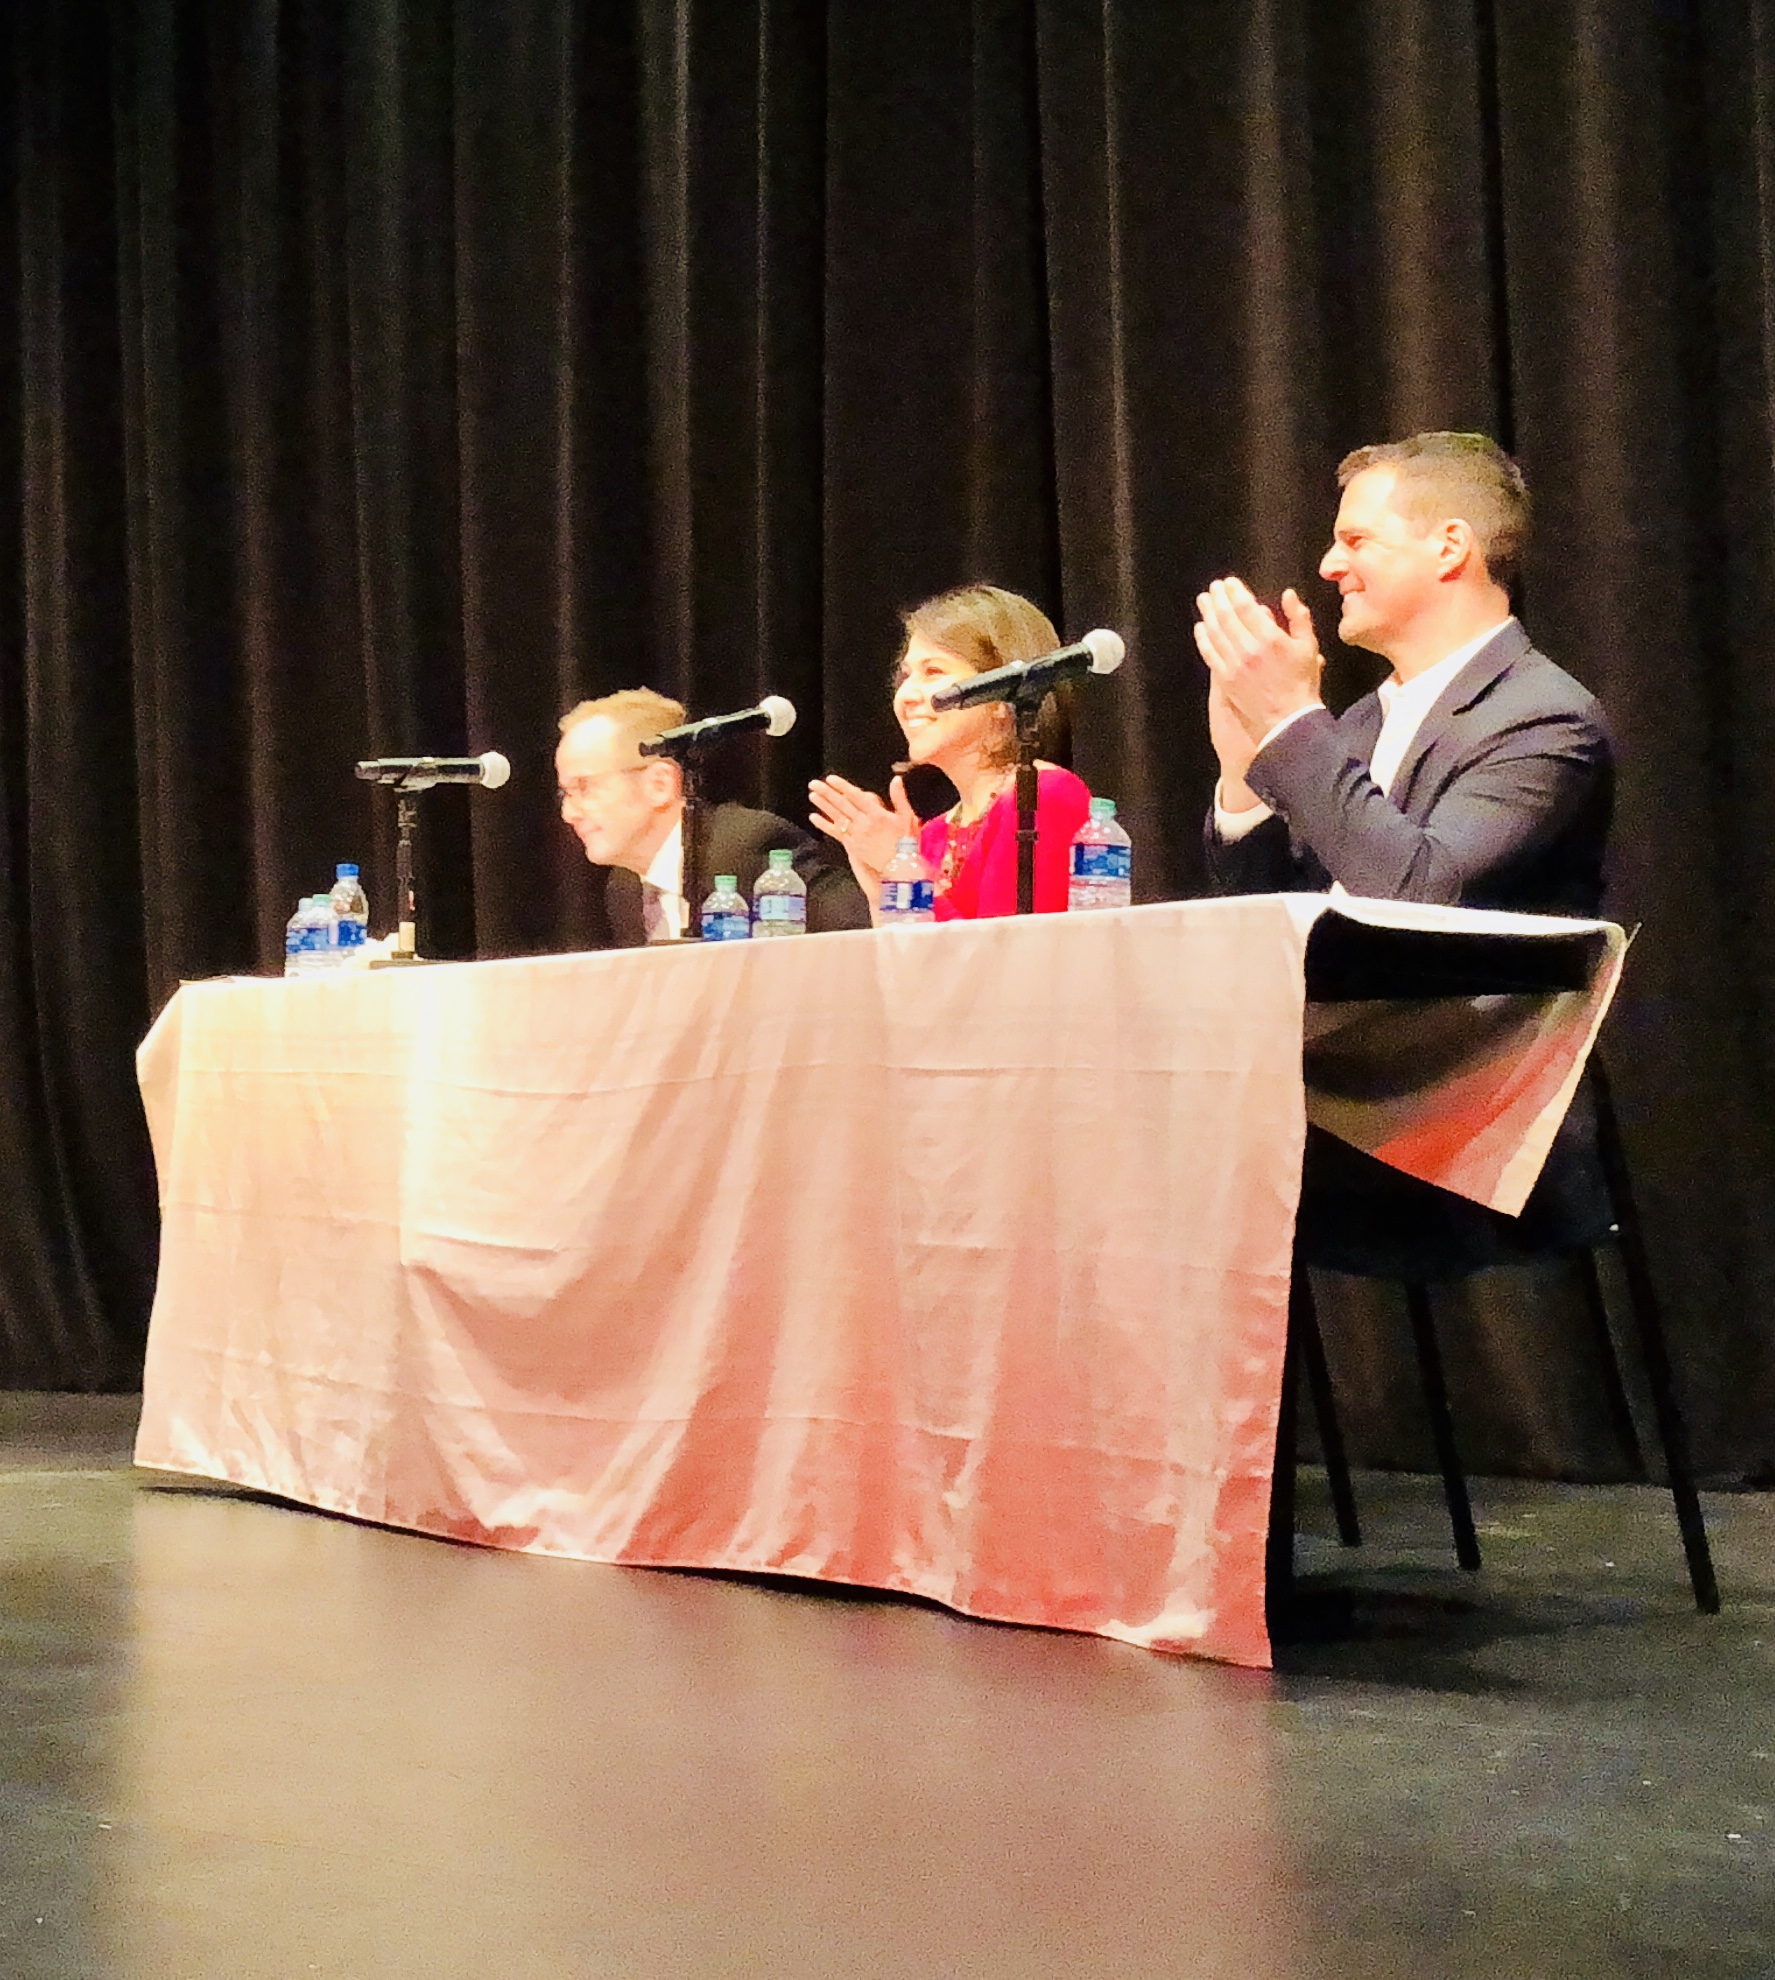 Elizabeth challenged the status quo at the Forum on January 16 at the Center on Halsted.